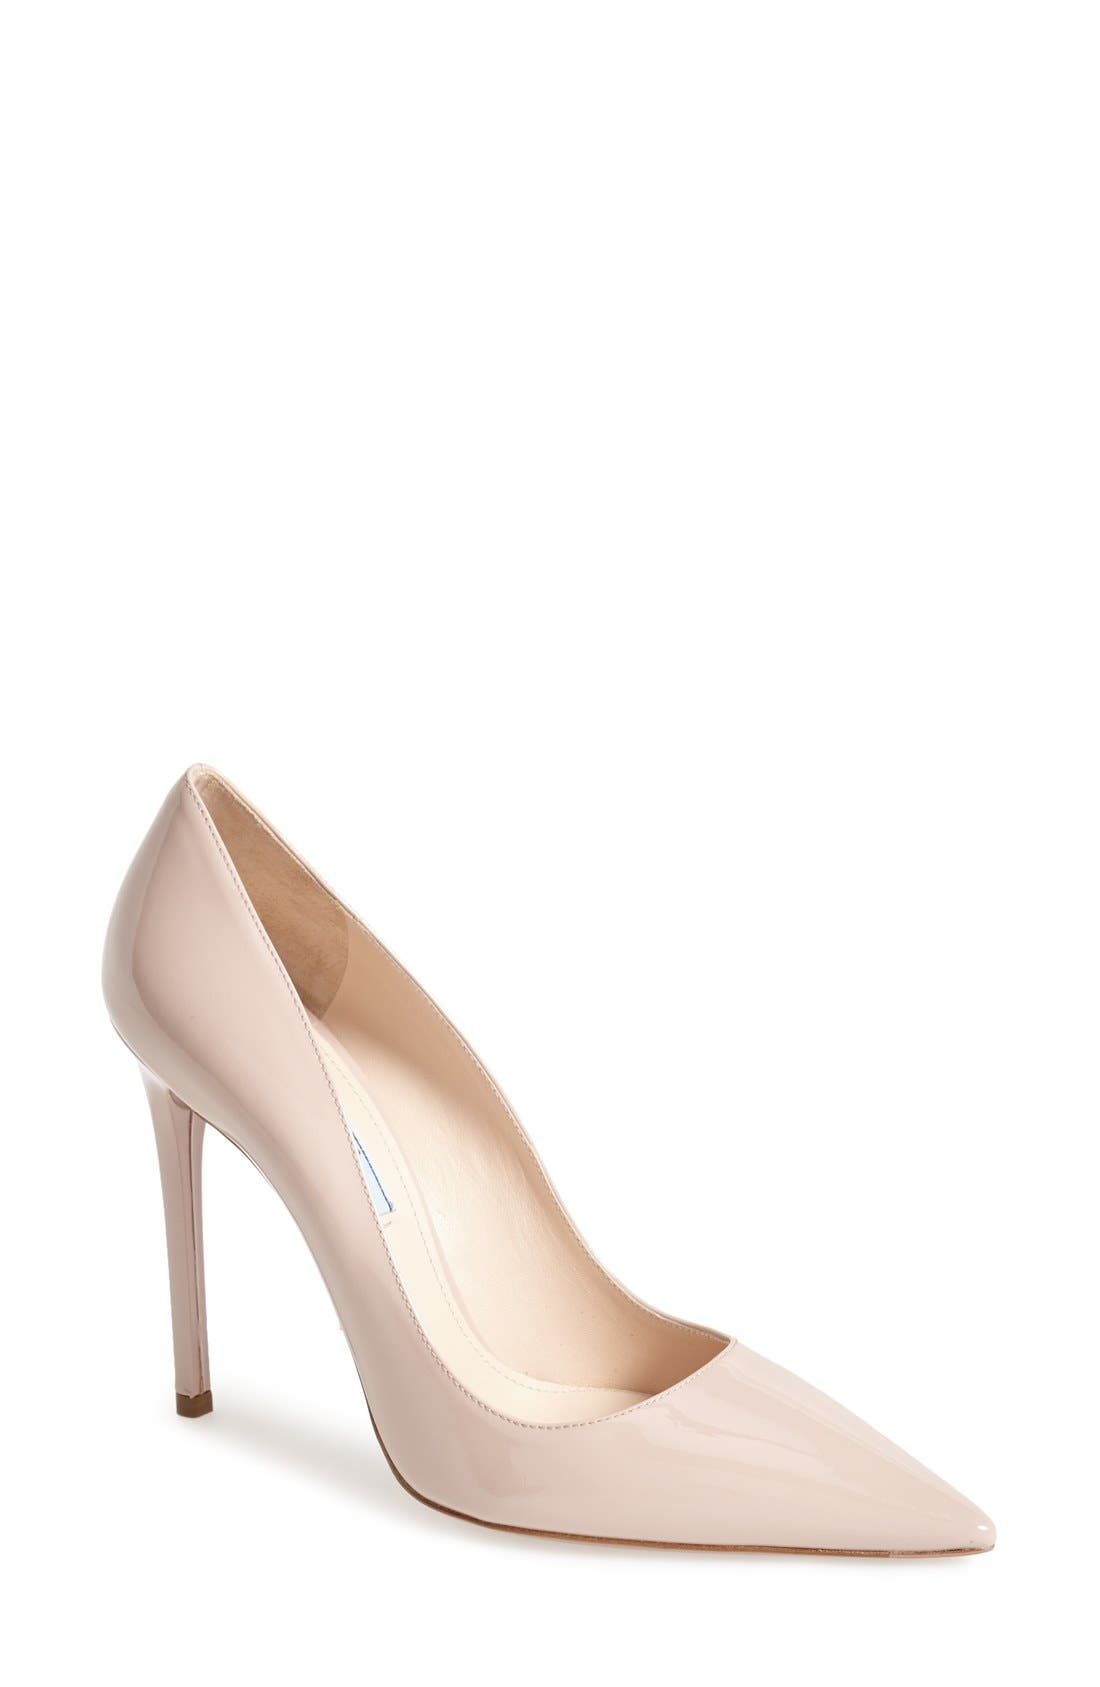 Alternate Image 1 Selected - Prada Pointy Toe Pump (Women)